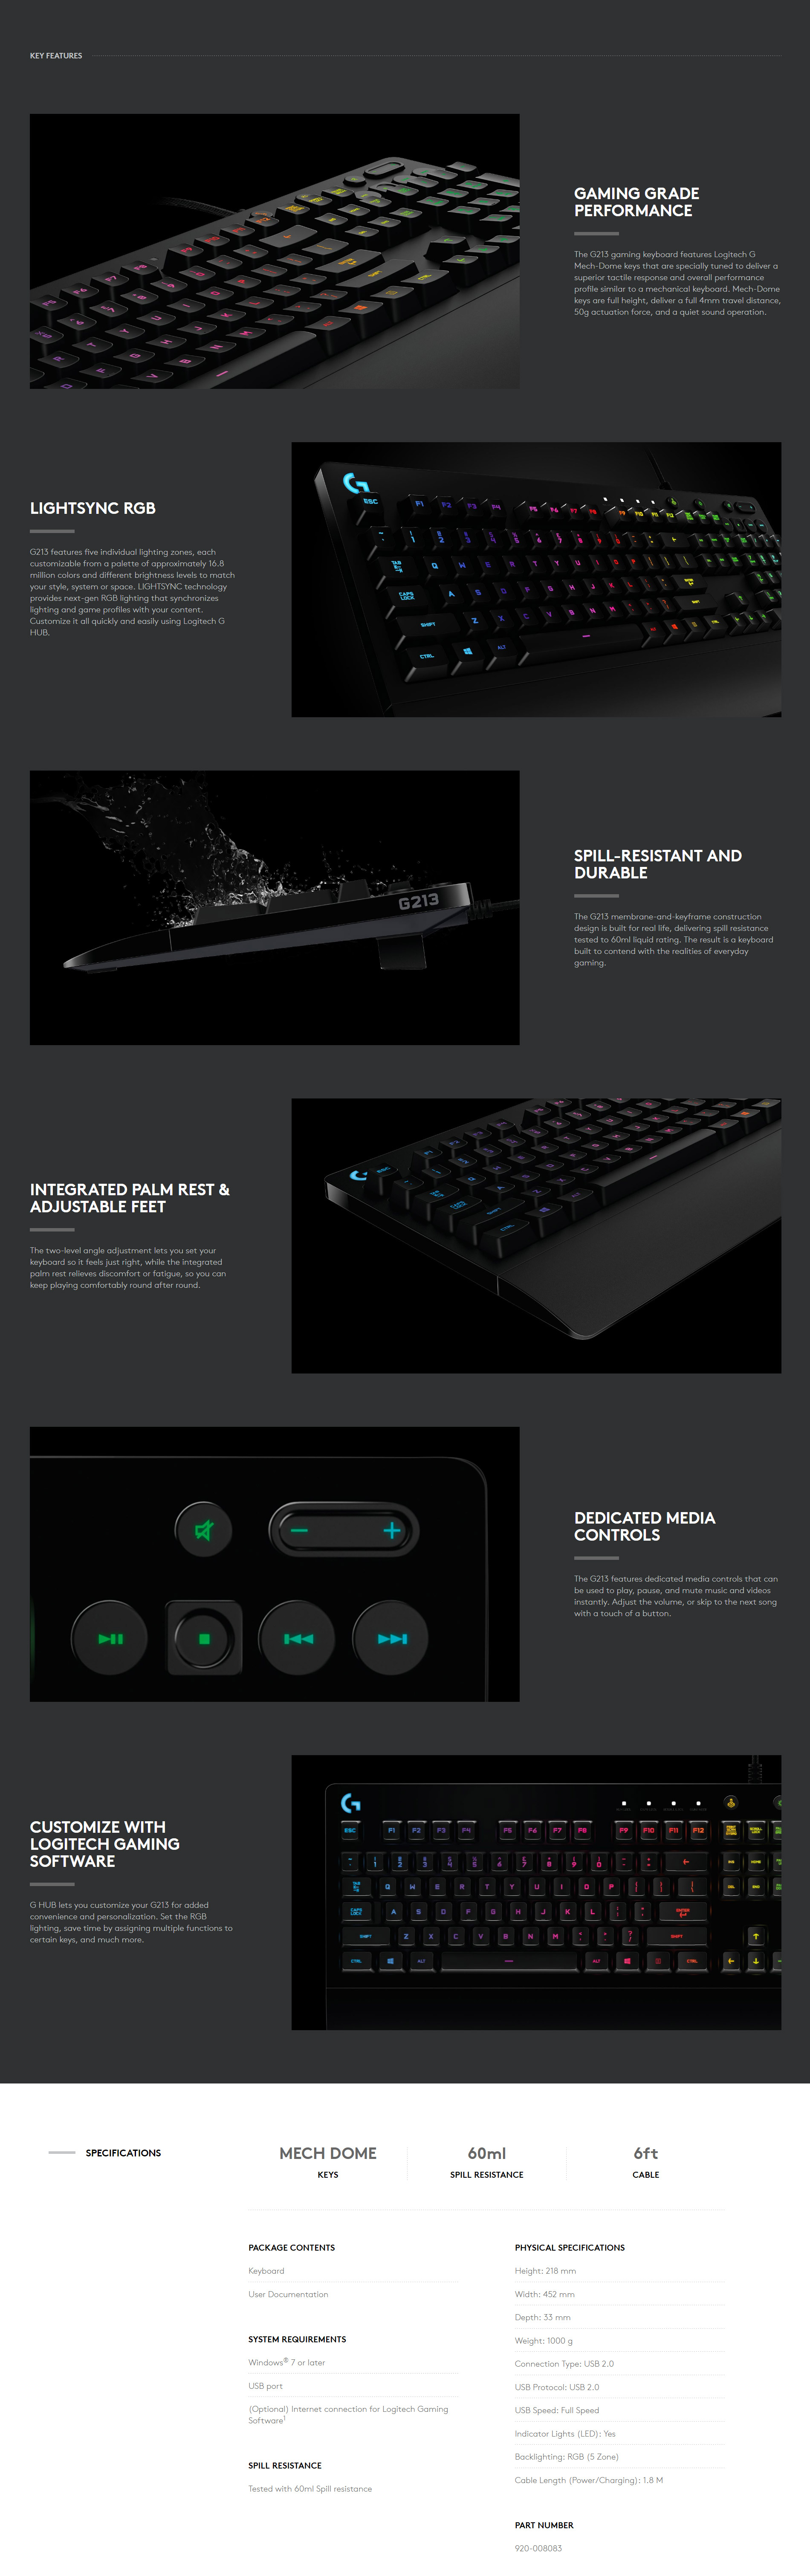 Logitech G213 Prodigy Gaming Keyboard Sb Technology